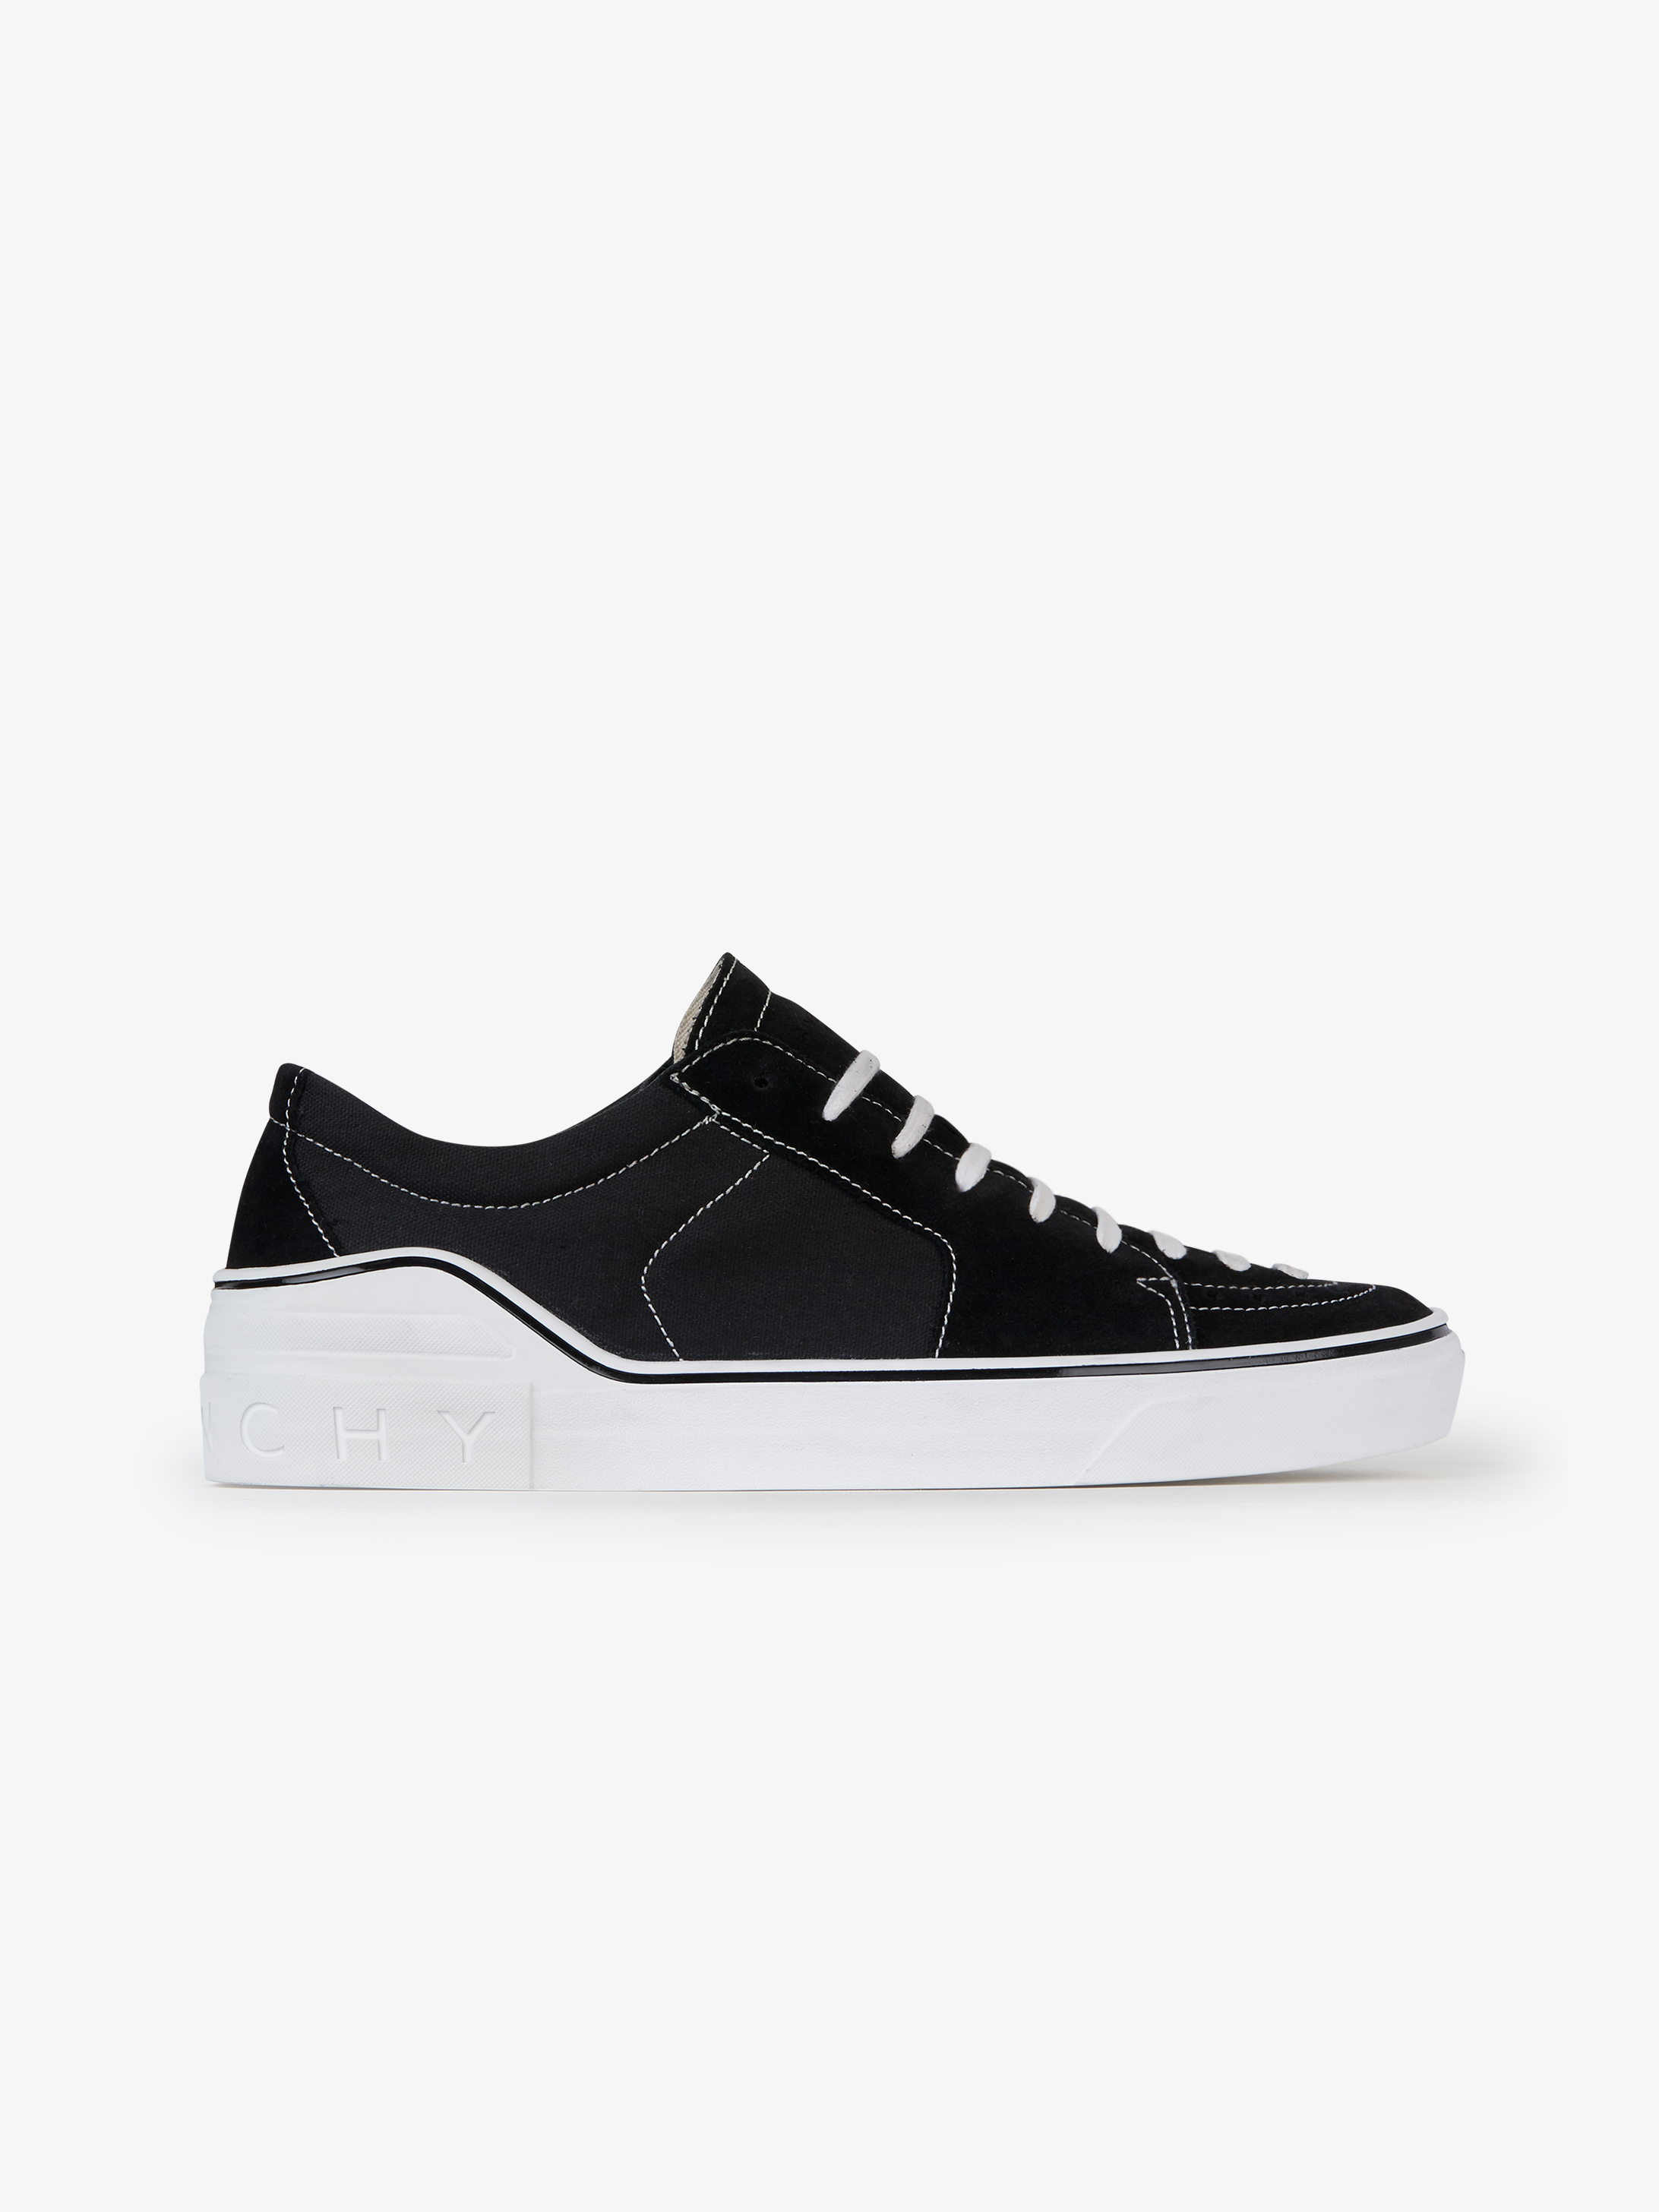 Star perforated low sneakers